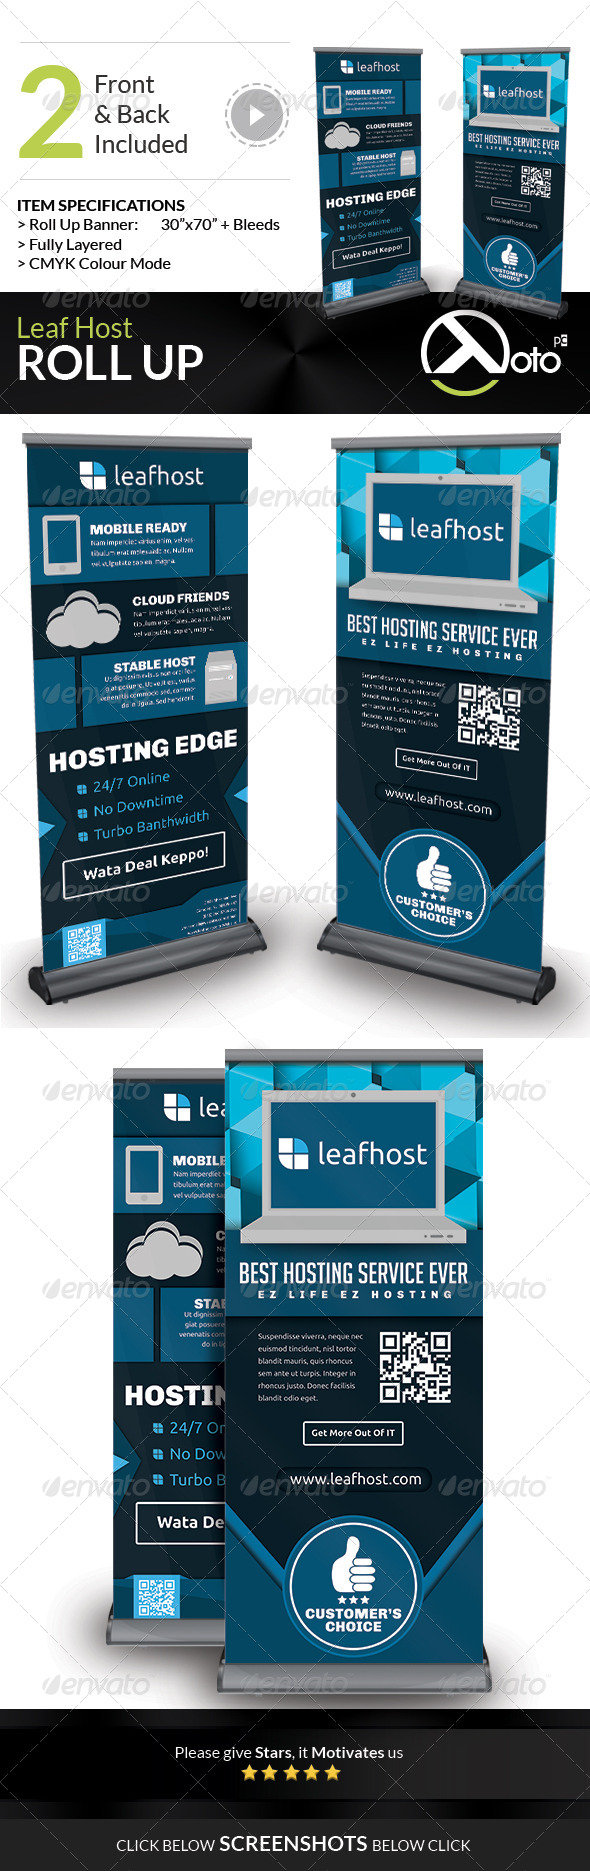 Leaf Host Roll Up Banners - Signage Print Templates